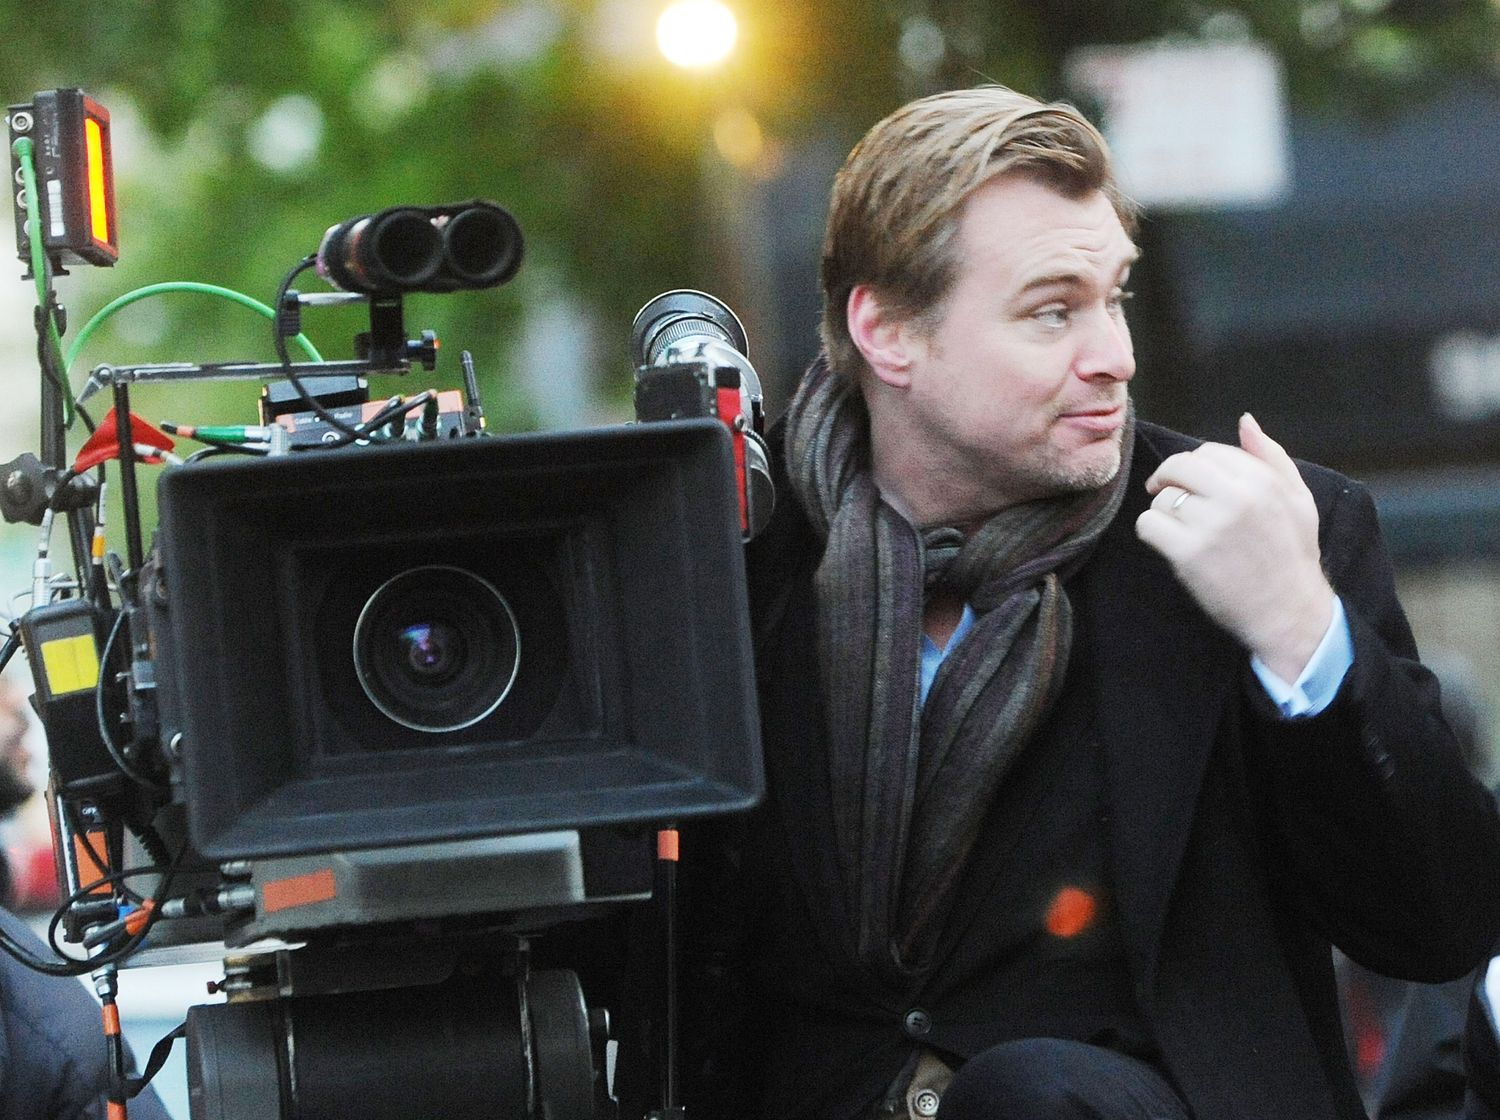 christopher nolan batmanchristopher nolan films, christopher nolan movies, christopher nolan filmleri, christopher nolan wiki, christopher nolan net worth, christopher nolan batman, christopher nolan young, christopher nolan фильмы, christopher nolan vk, christopher nolan quotes, christopher nolan instagram, christopher nolan oscar, christopher nolan gif, christopher nolan interview, christopher nolan wikipedia, christopher nolan 2016, christopher nolan anime, christopher nolan james bond, christopher nolan tumblr, christopher nolan scripts